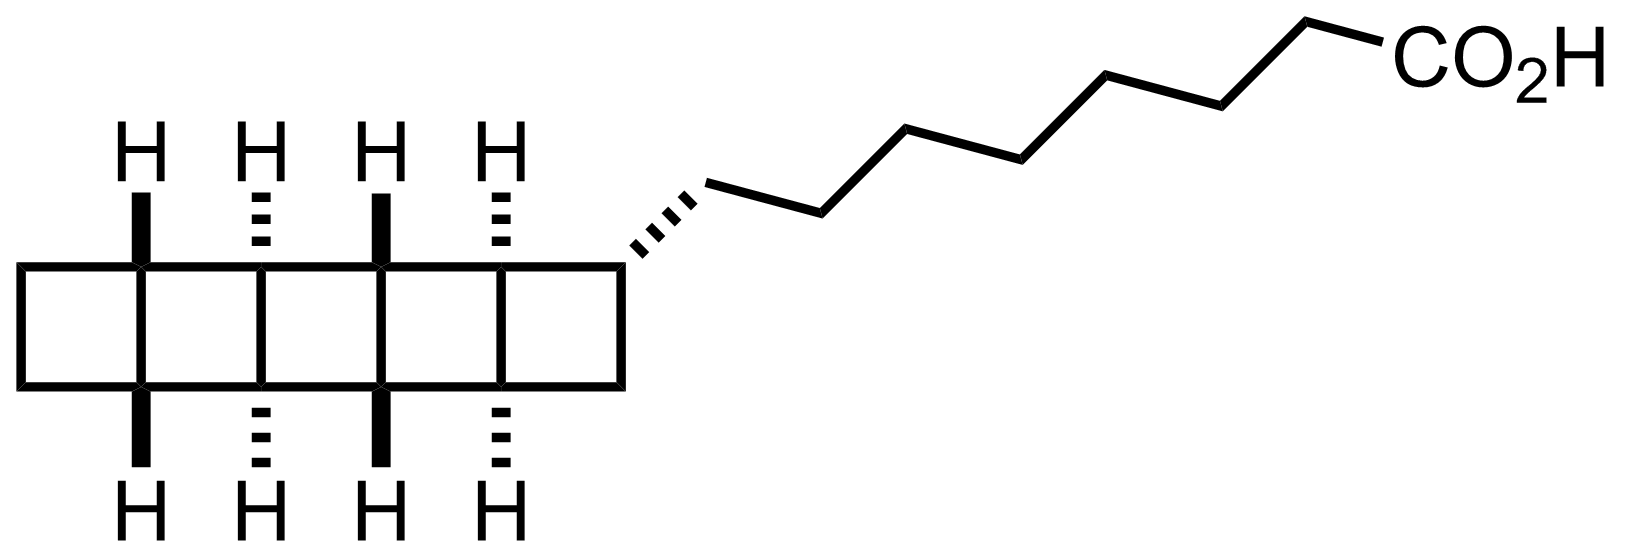 Structure of Pentacycloanammoxic Acid